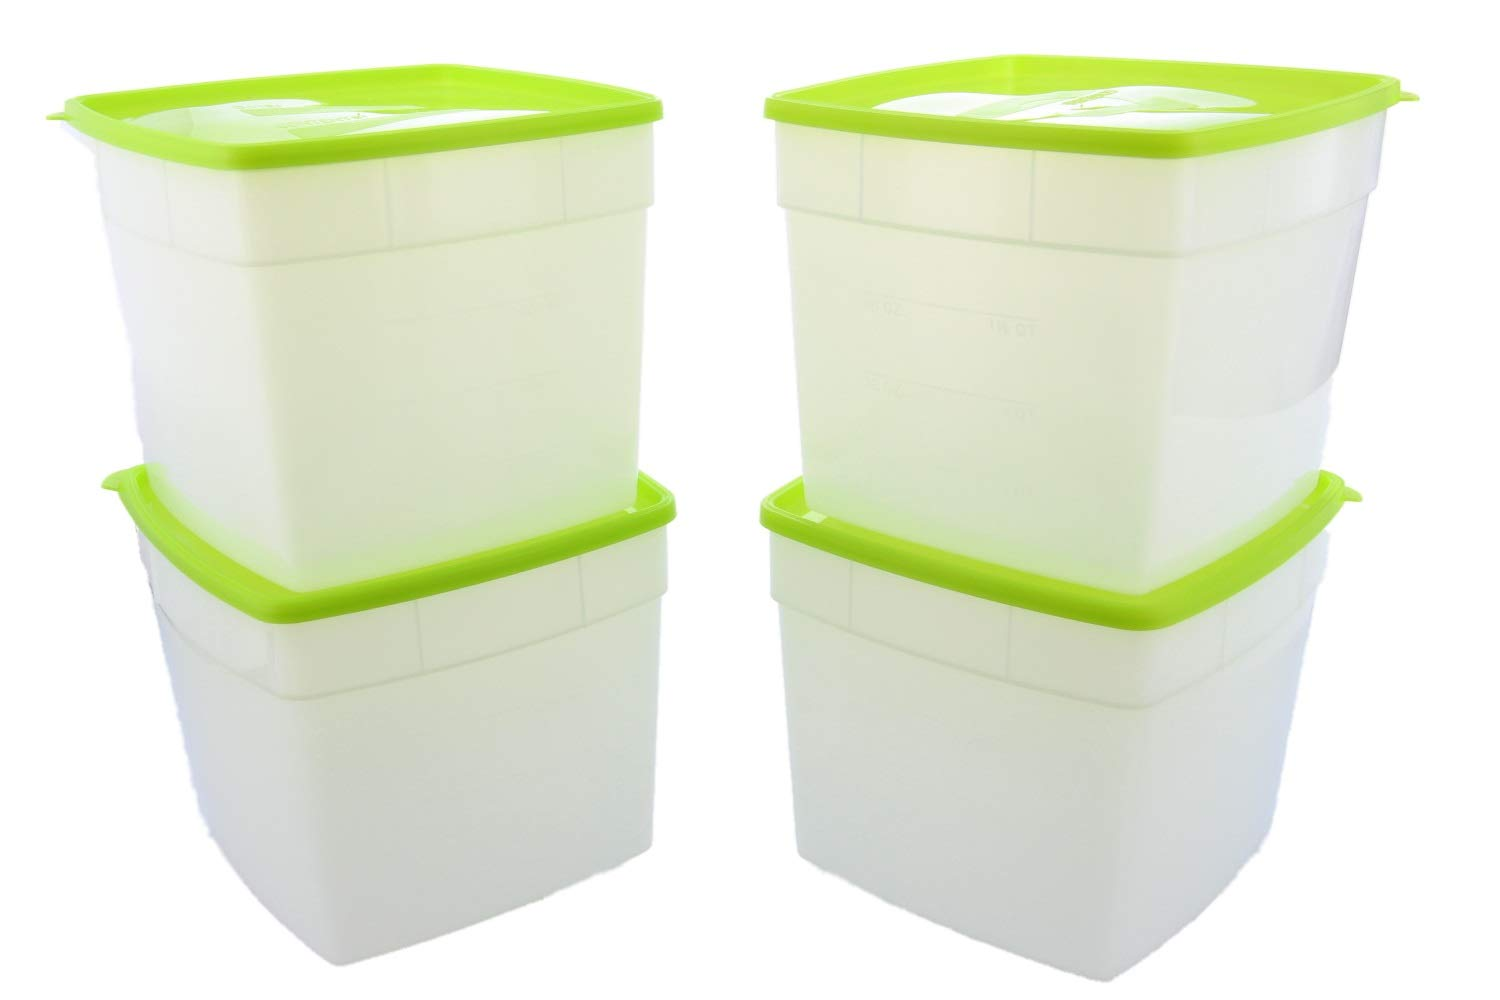 Arrow Reusable Plastic Storage Container Set, 4 Pack, 0.5 Gallon – Food, Meal Prep and Leftovers – Freeze, store, Reheat - Clear Container Set With Lids – BPA-Free, Dishwasher and Microwave Safe